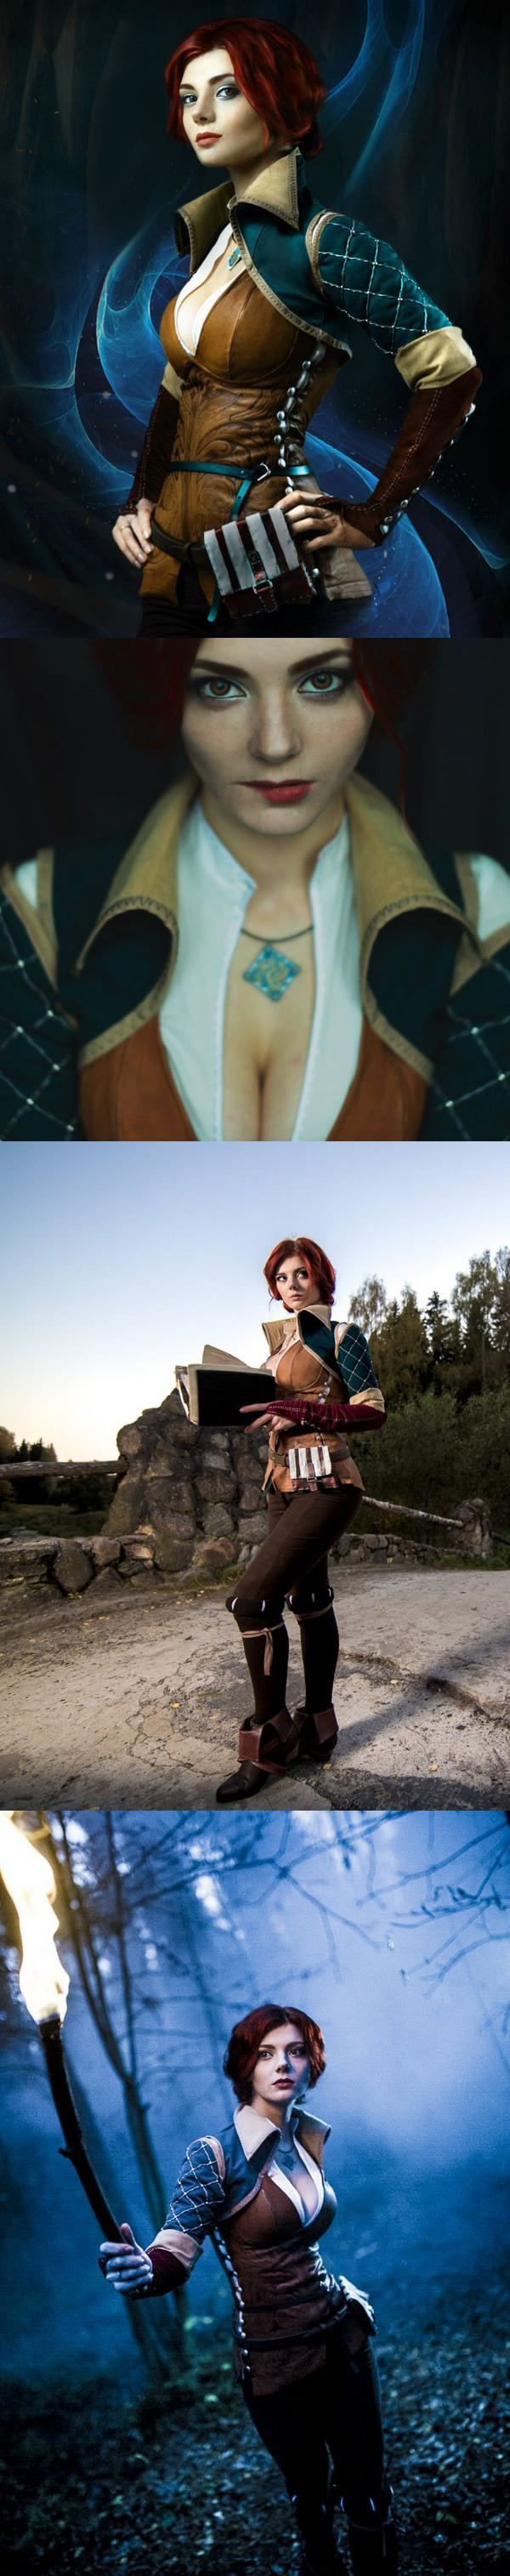 Xenia as Triss Merigold from The Witcher